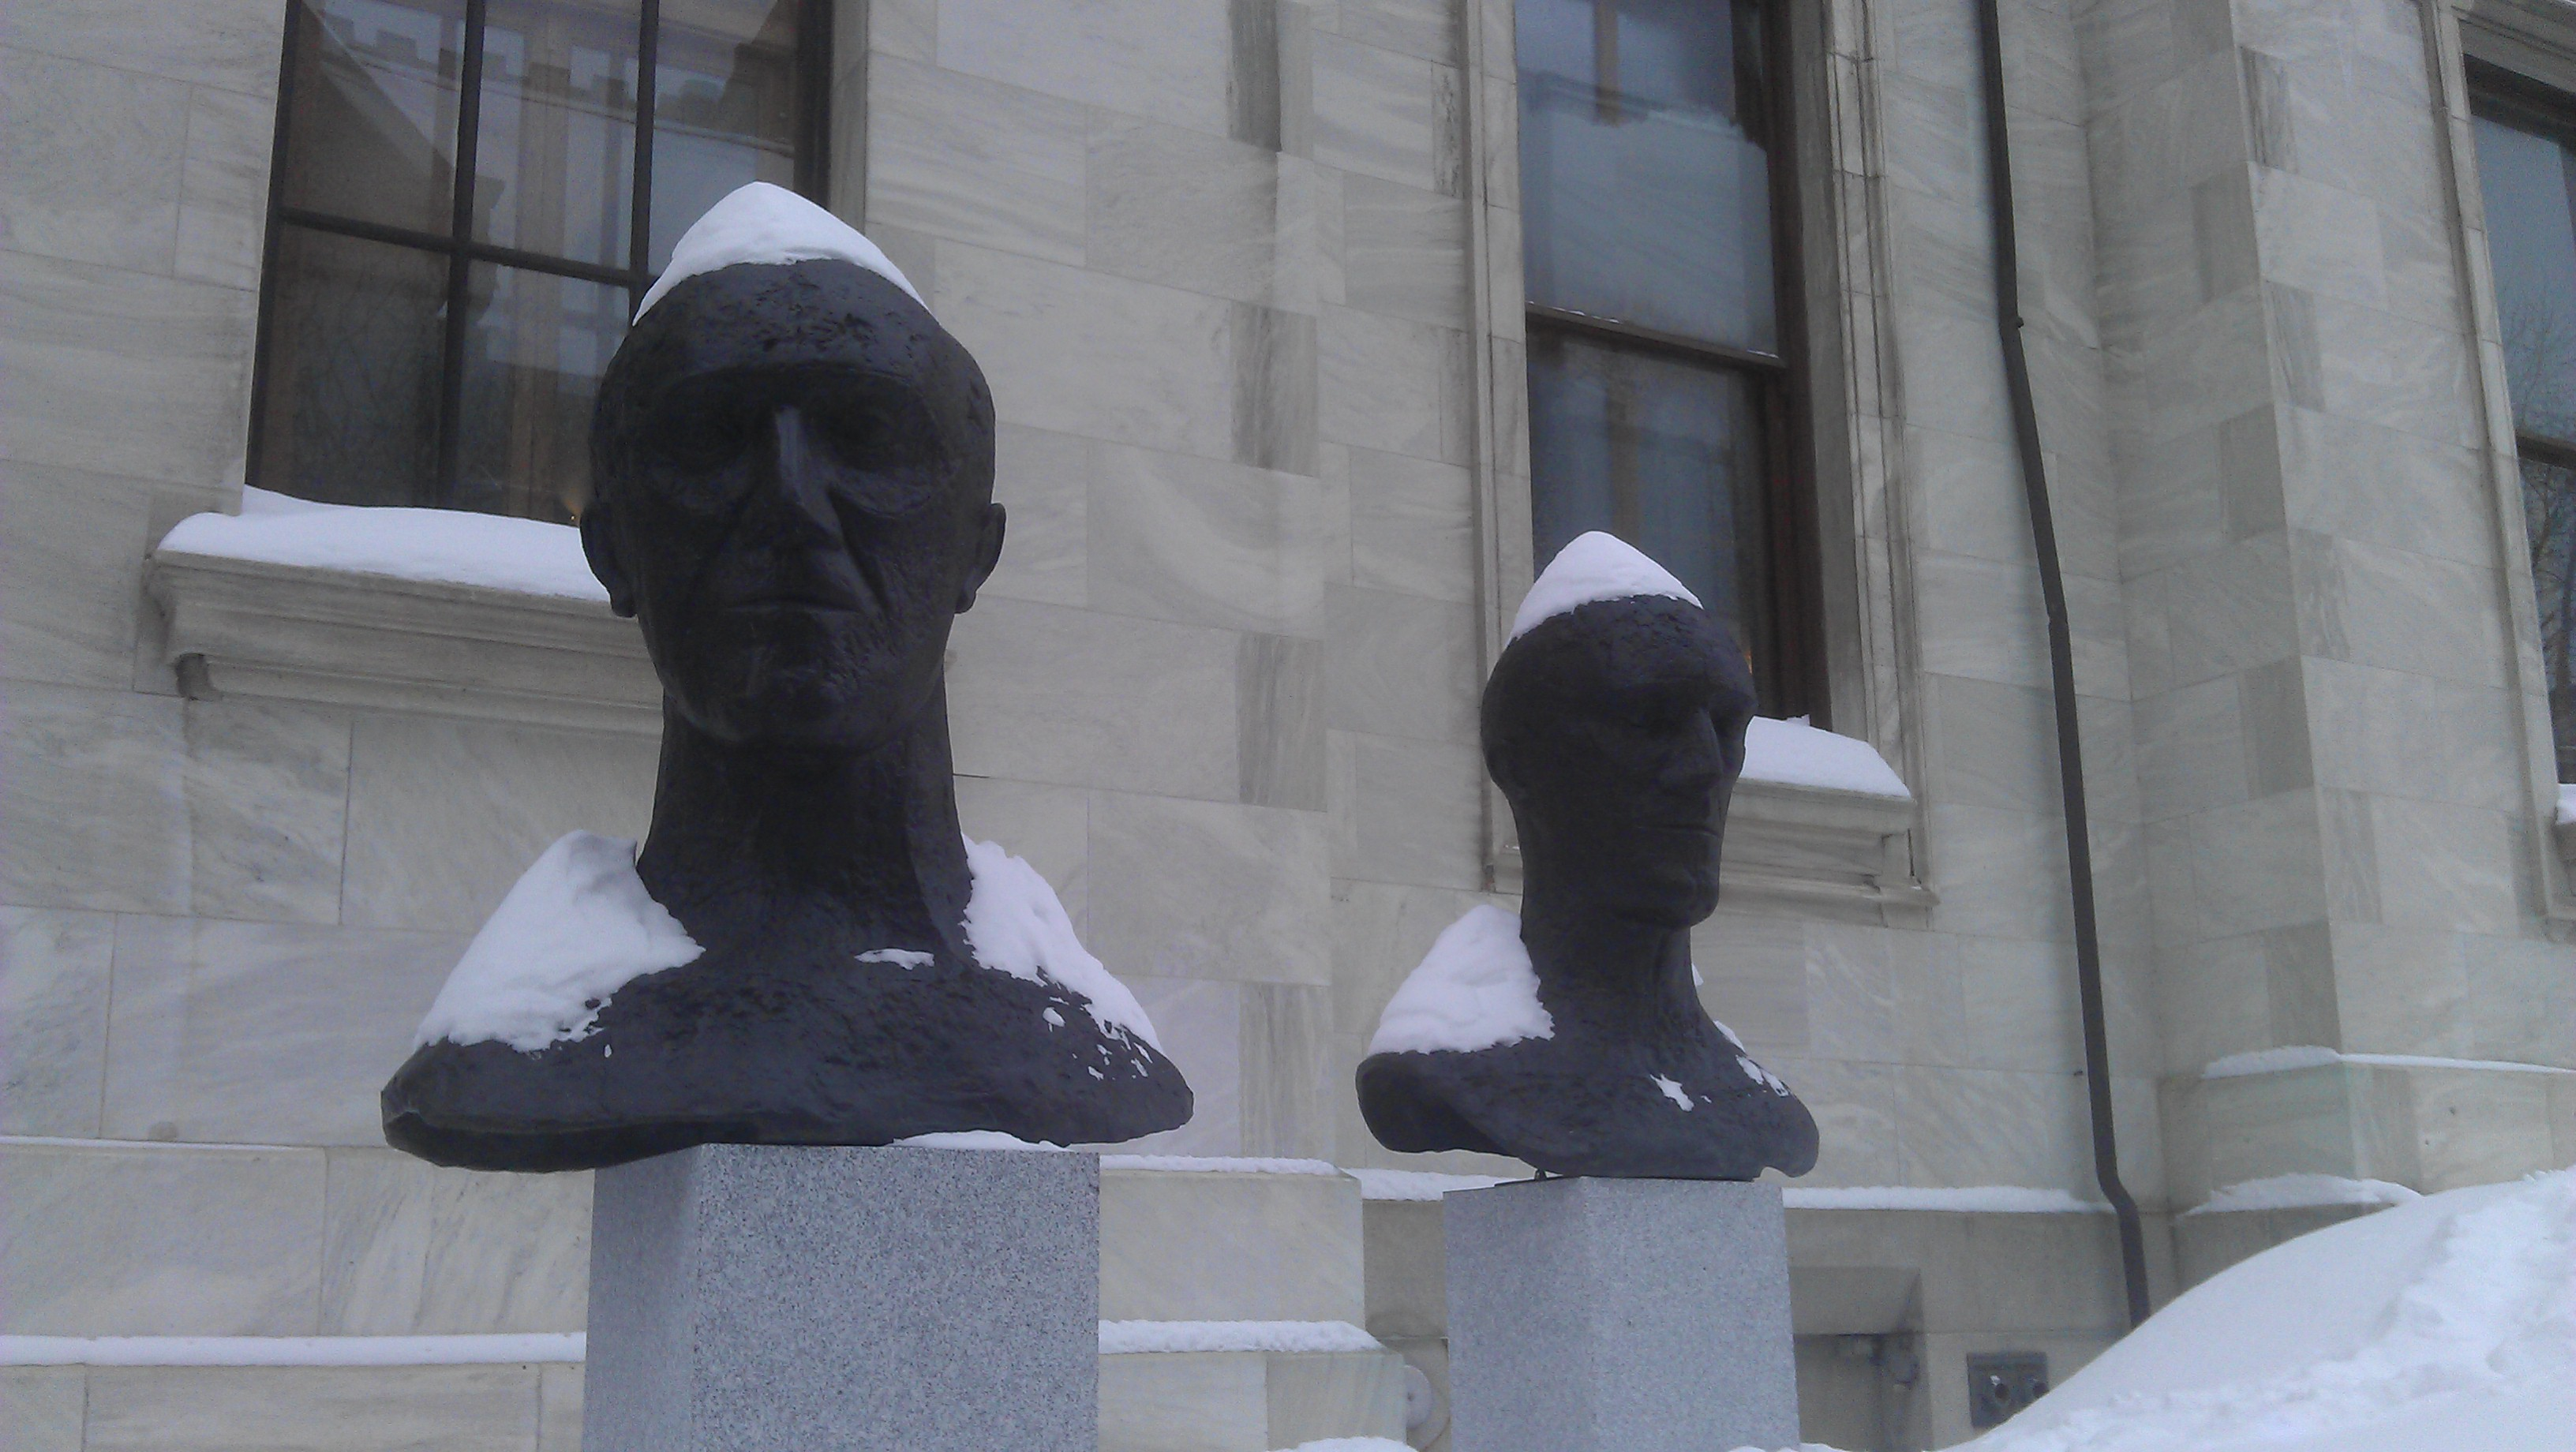 Statues wearing hats